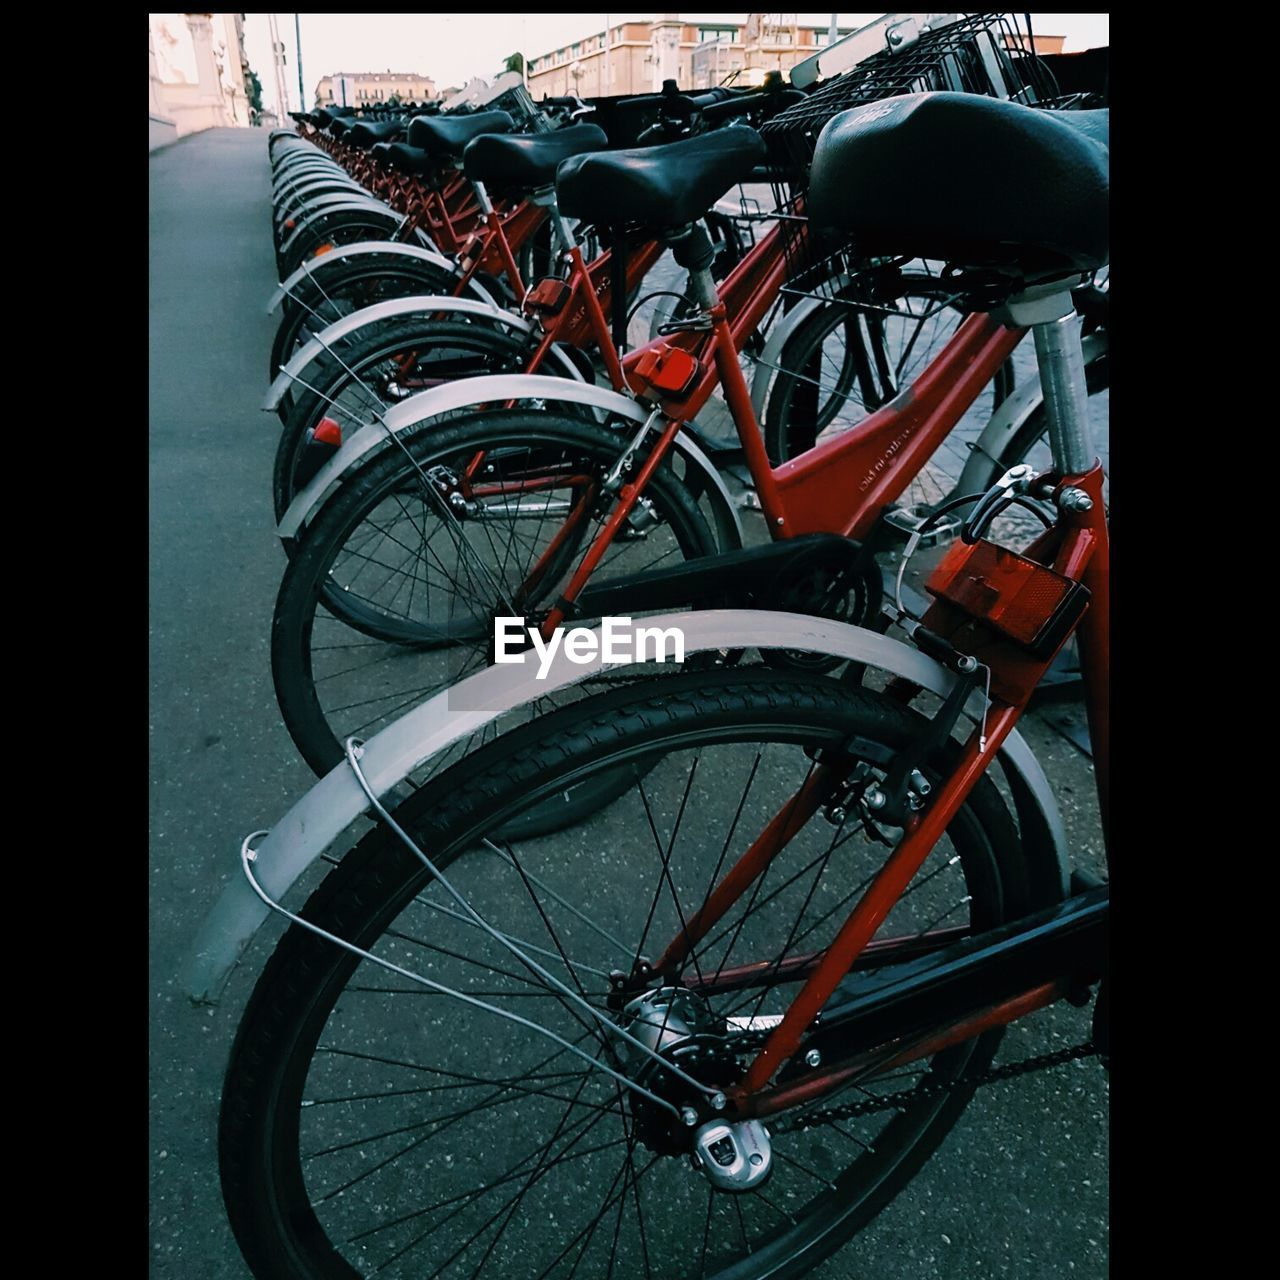 bicycle, transportation, mode of transport, land vehicle, stationary, bicycle rack, day, parking, no people, outdoors, red, spoke